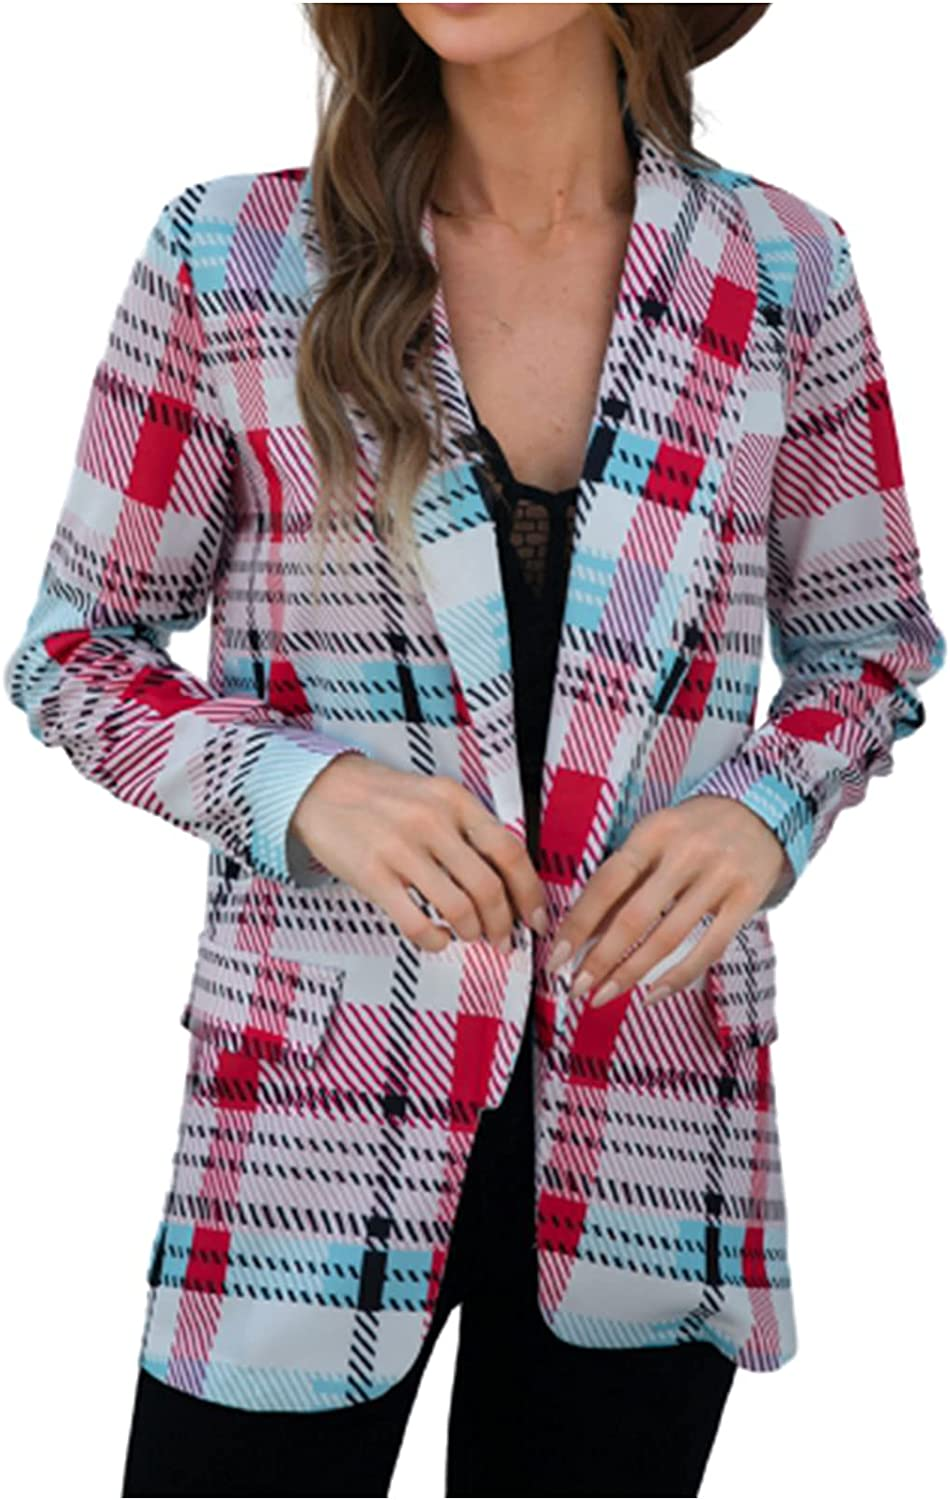 Clearance!! Coat Jacket Women's Autumn and Winter Street Casual Long Sleeve Plaid Suit Coat